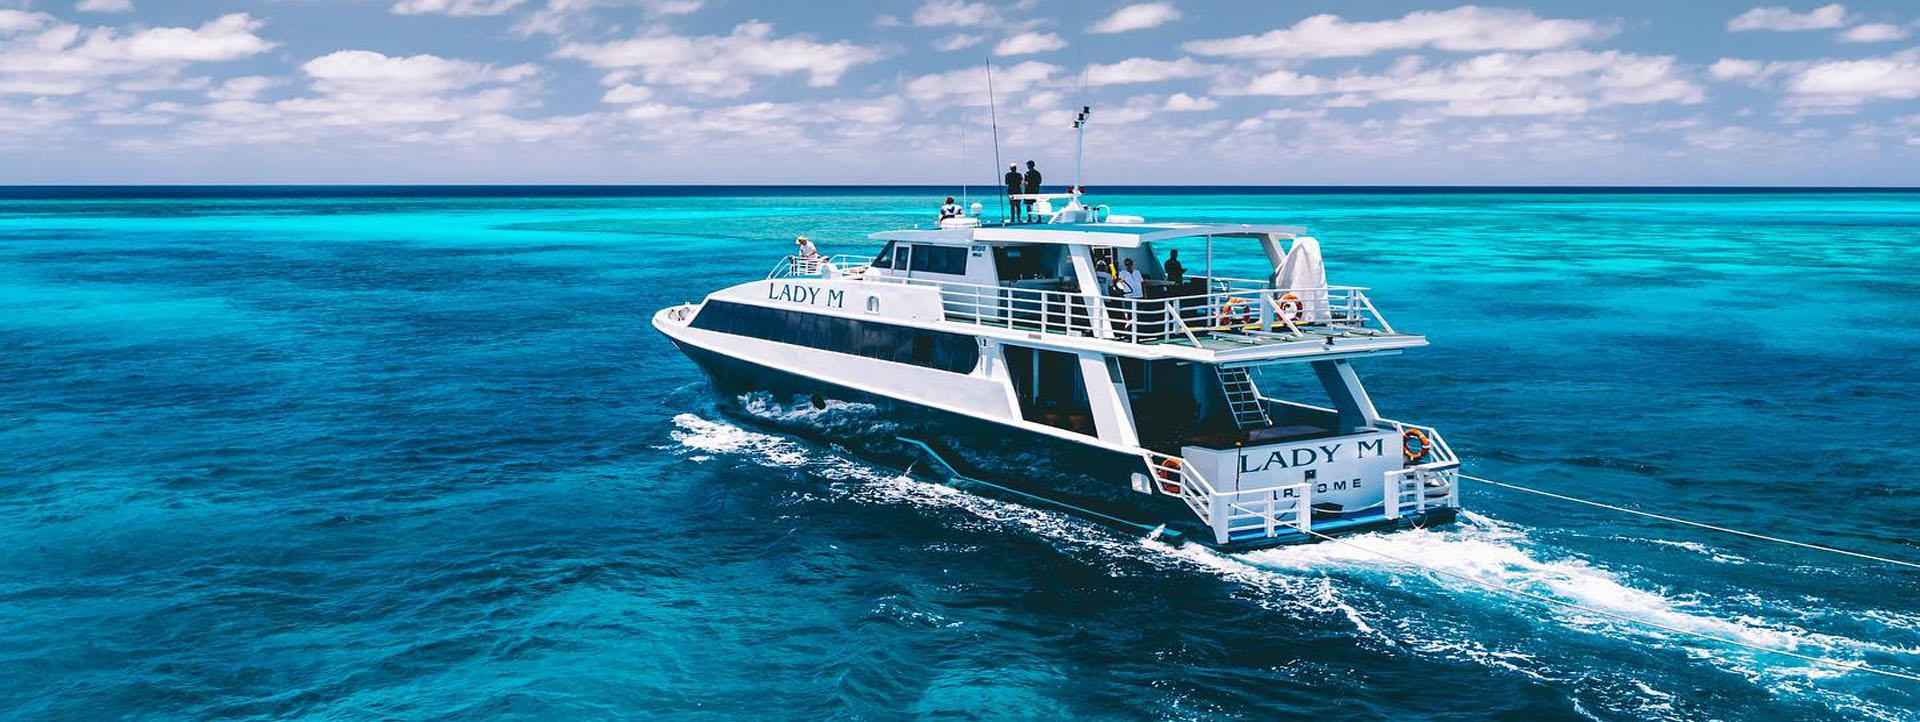 LADY M Rowley Shoals cruise blue lagoons